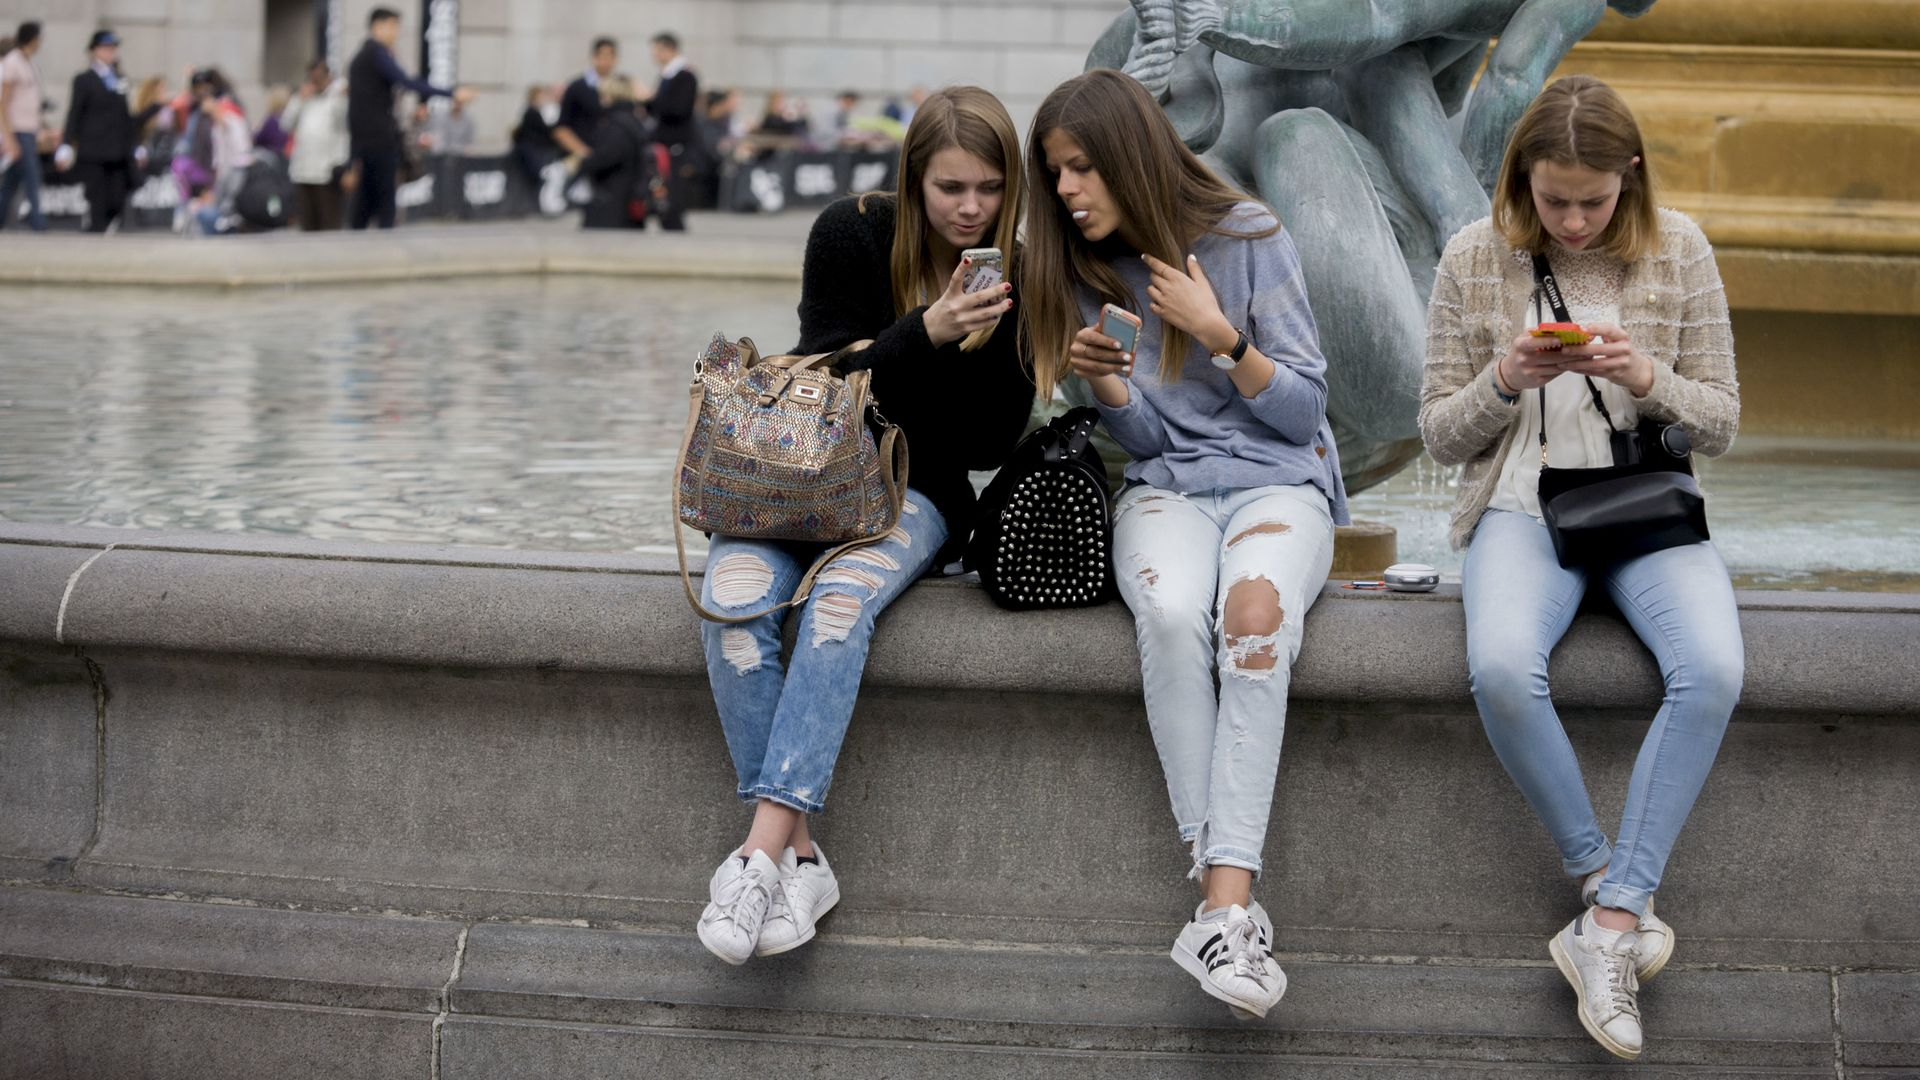 Three teenage girls lost in the world of smartphone apps and messaging.